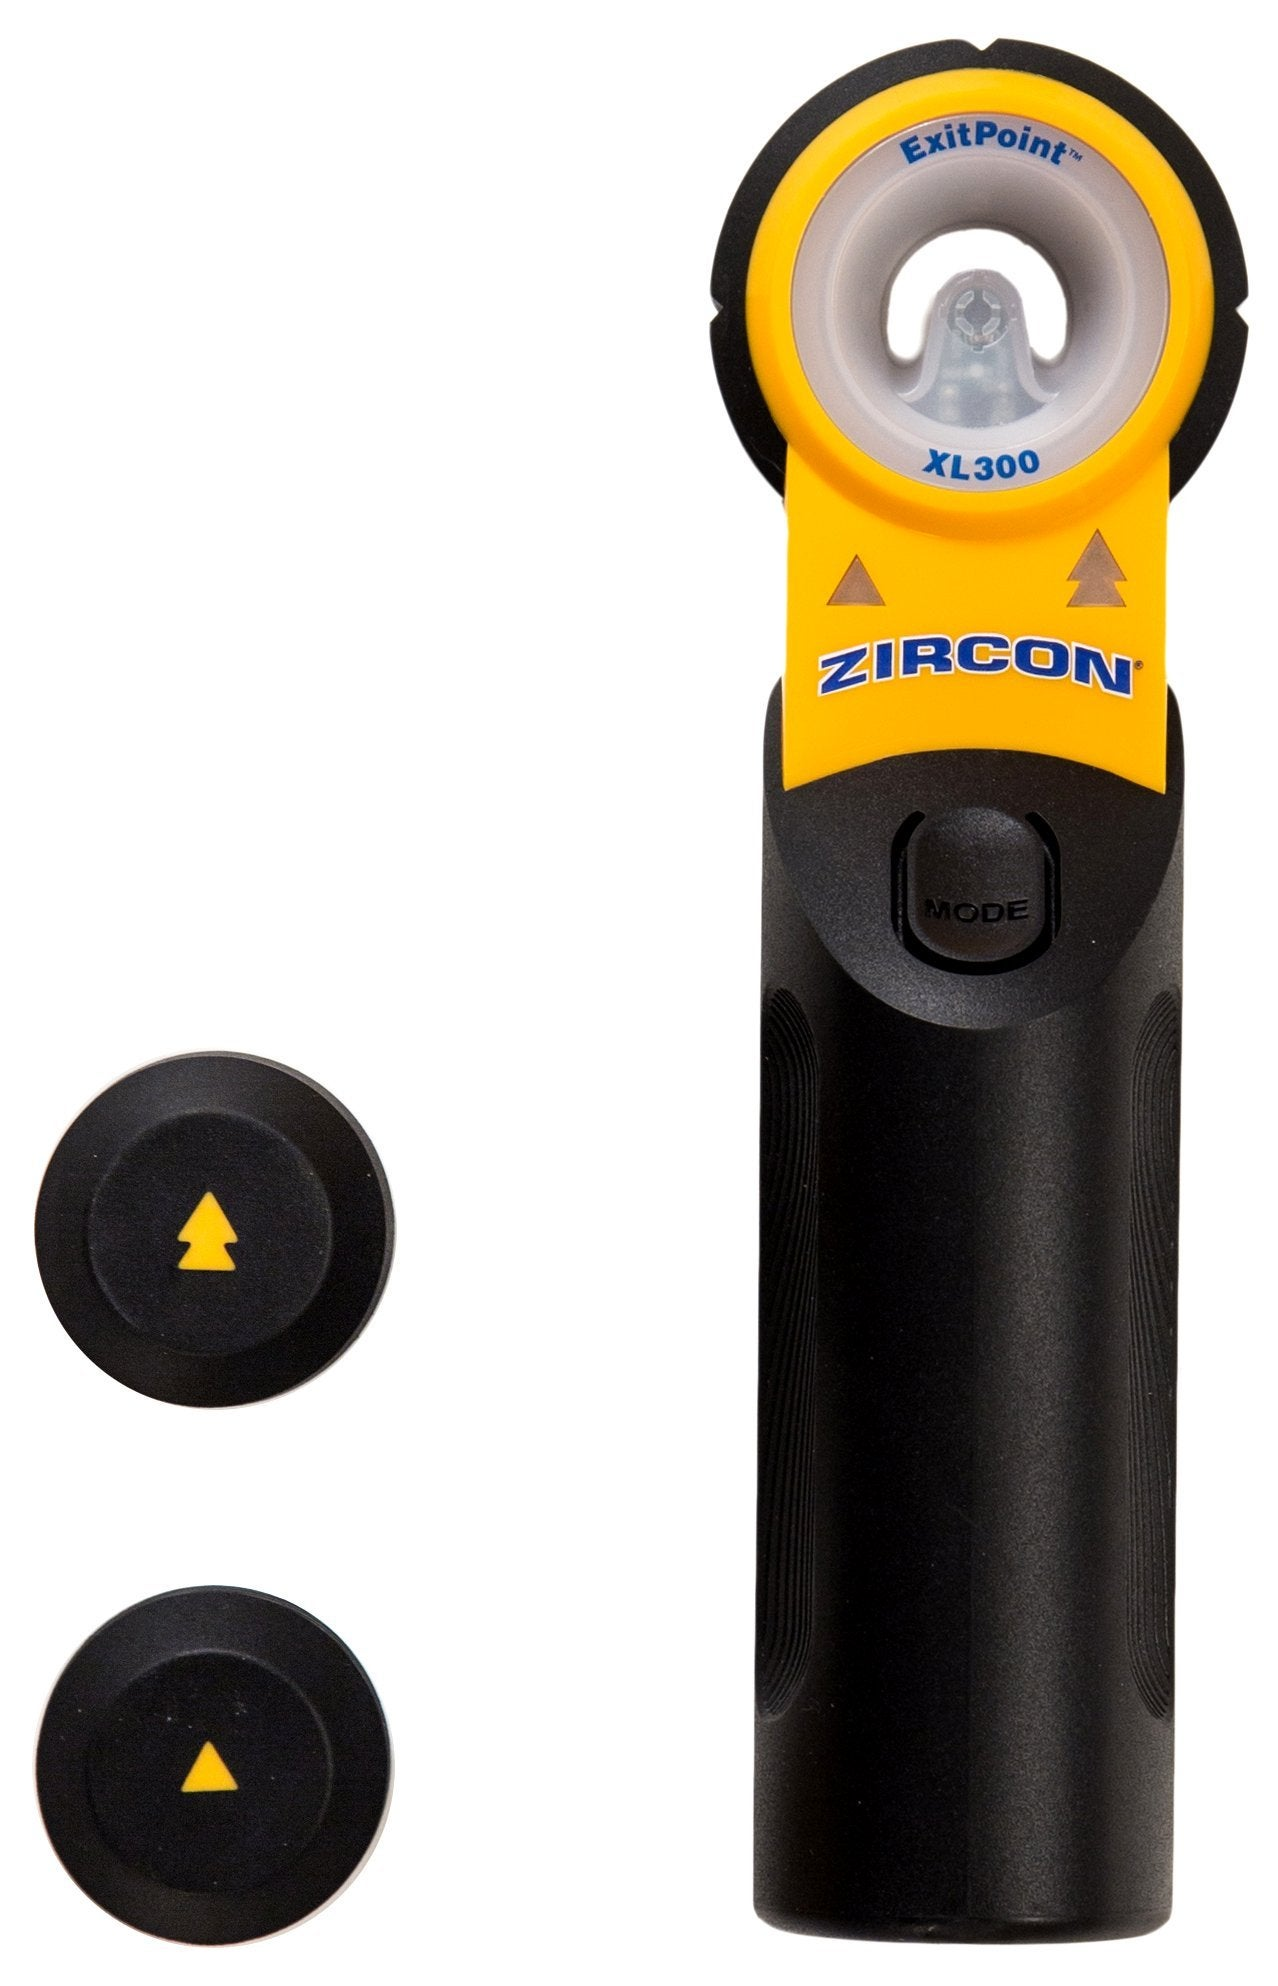 Zircon ExitPoint XL300 Through Hole Drill Guide for Cabling and Electrical